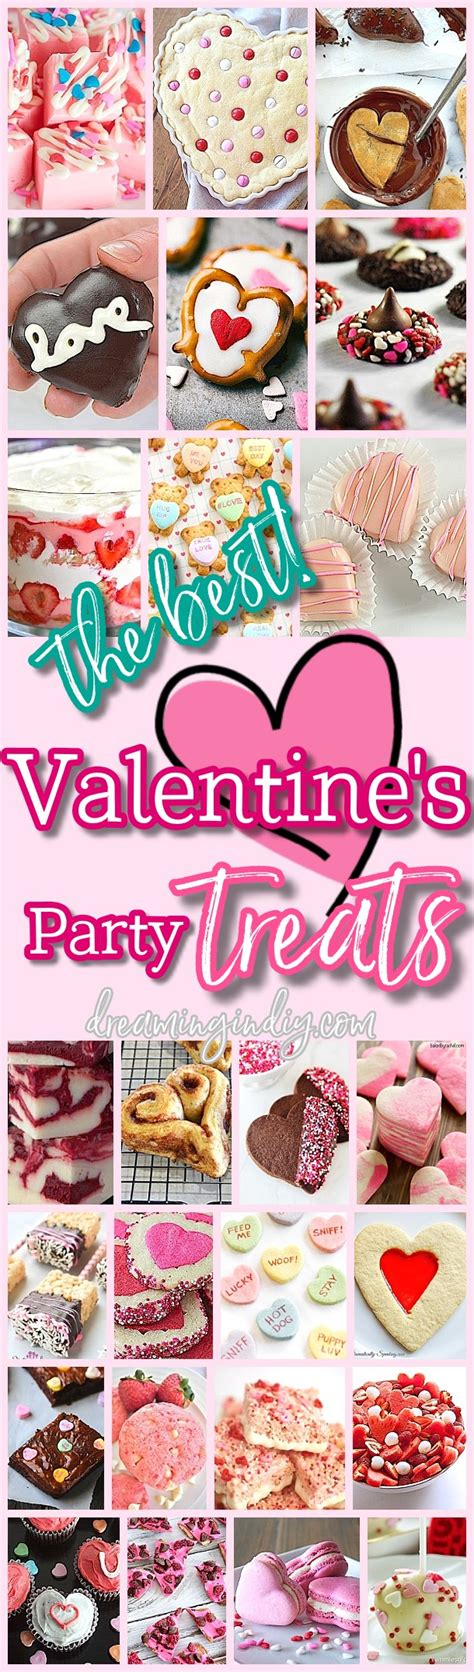 The Best Easy Valentine's Day Desserts And Party Treats